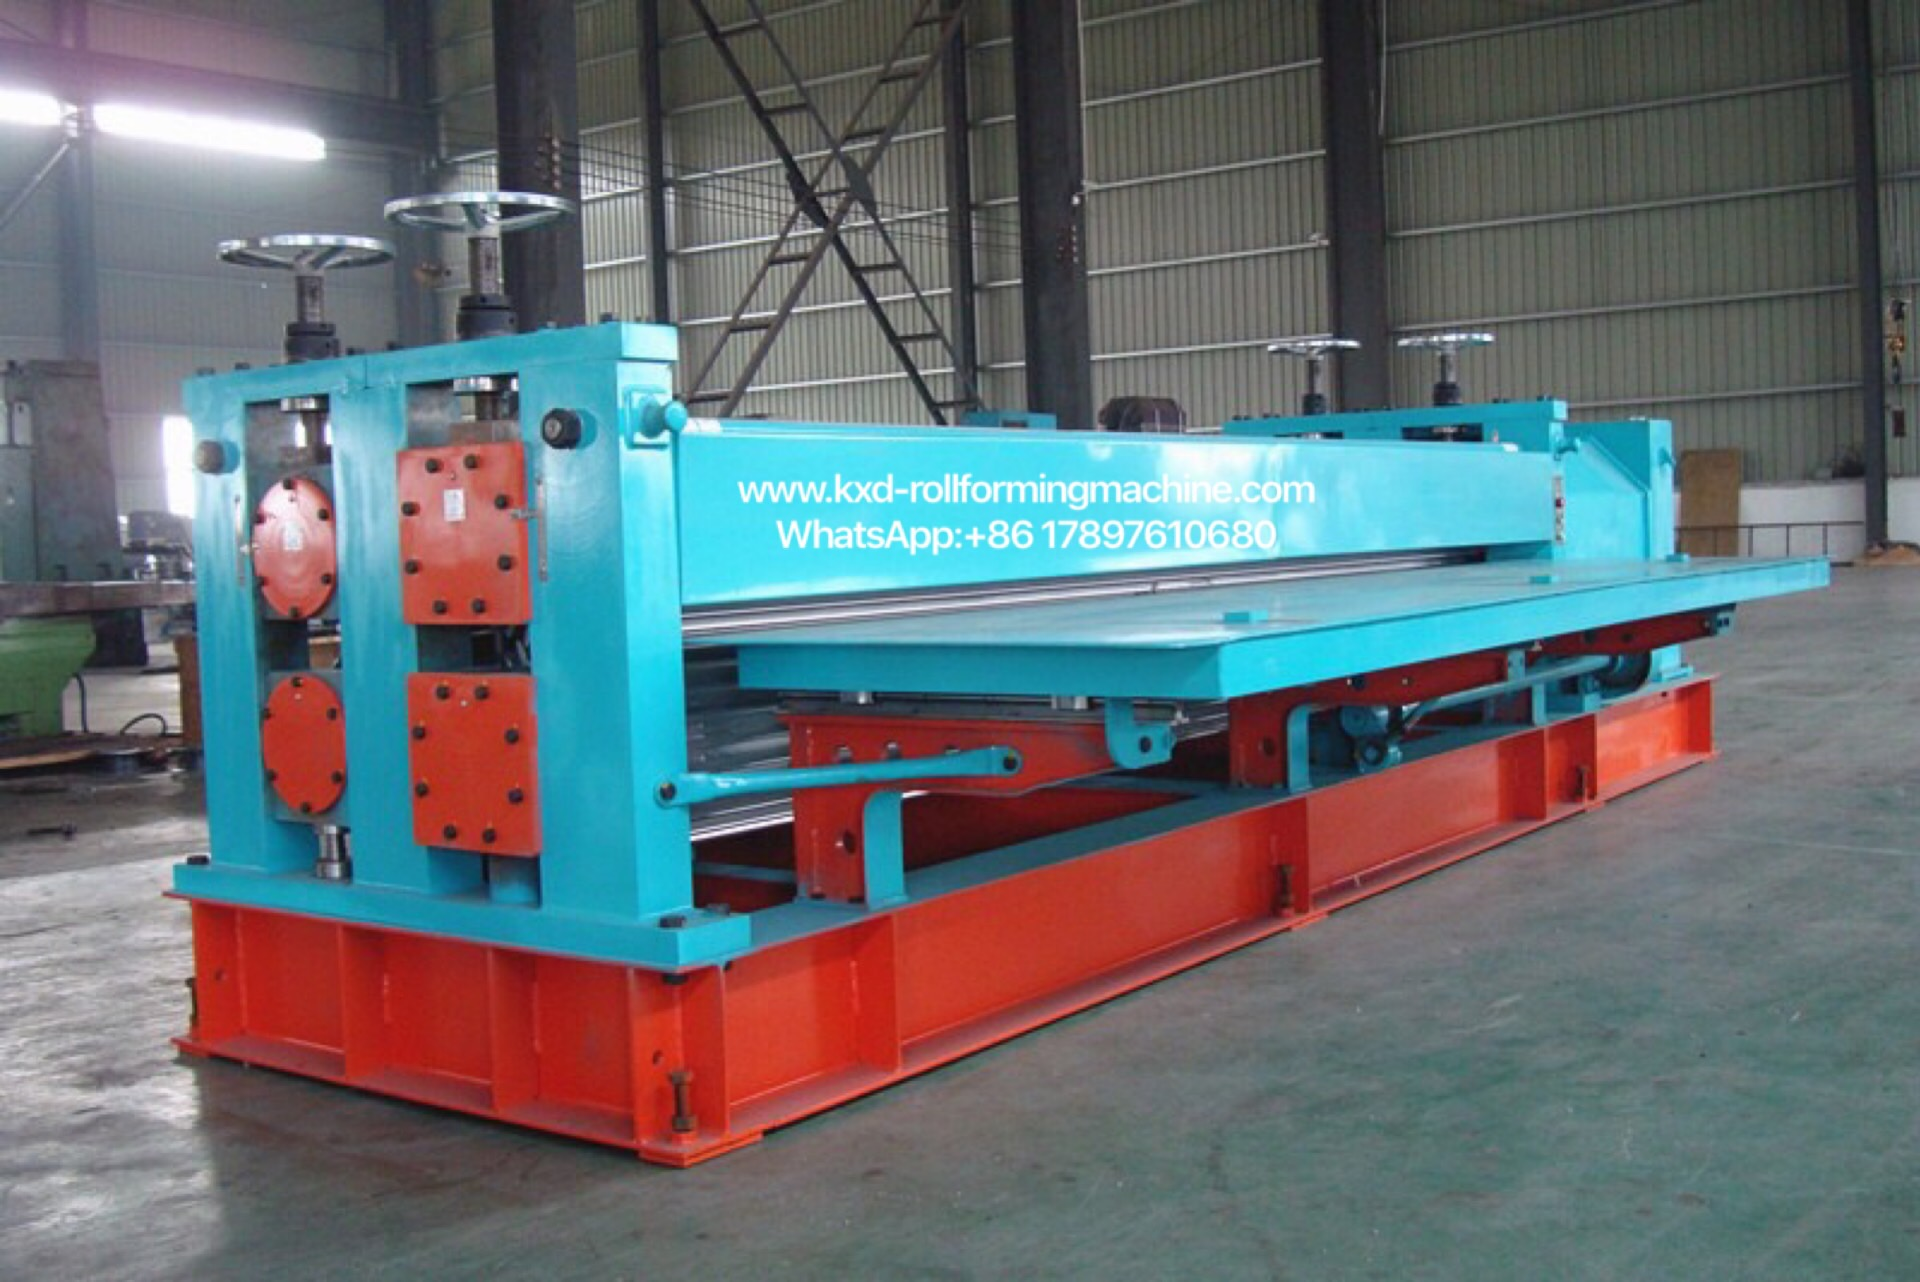 CORRUGATED TILE ROLL FORMING MACHINE